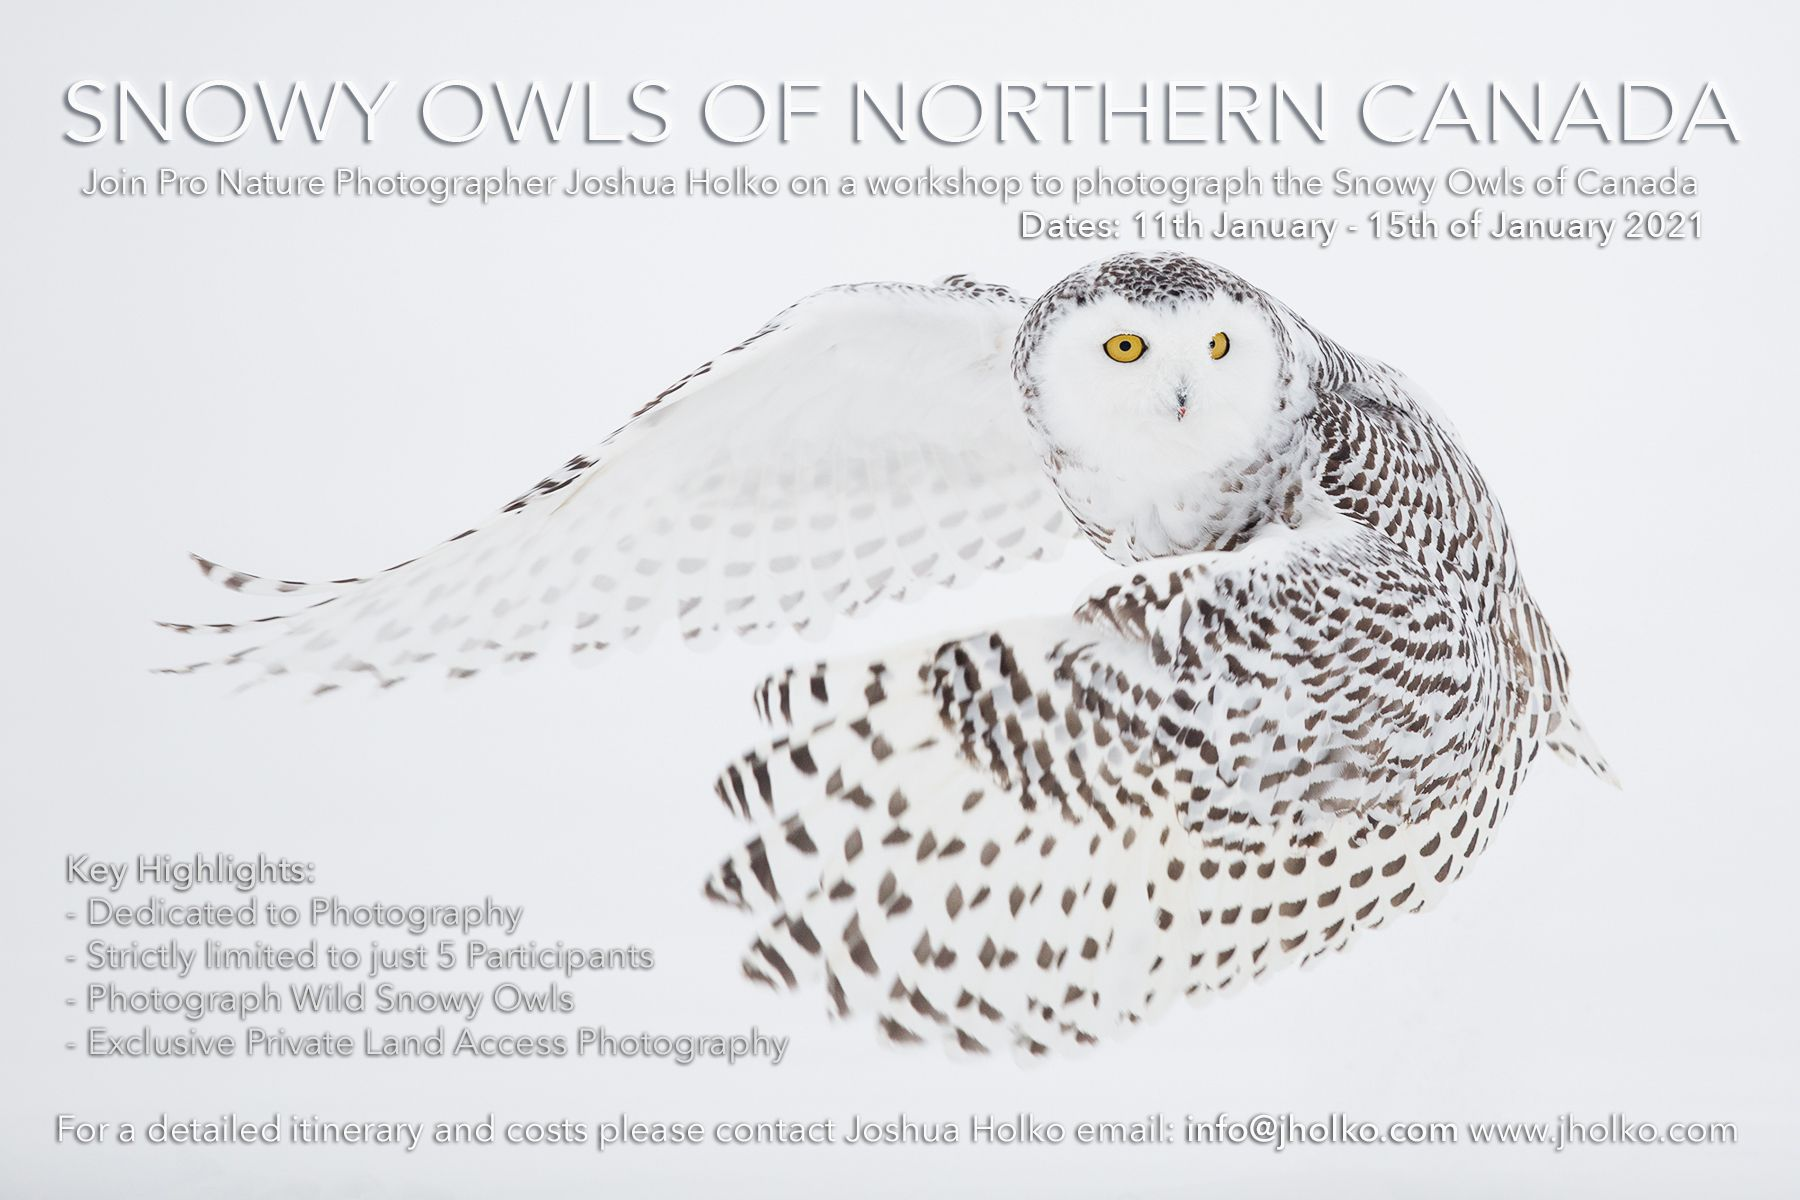 Snowy Owls of Northern Canada with Joshua Holko